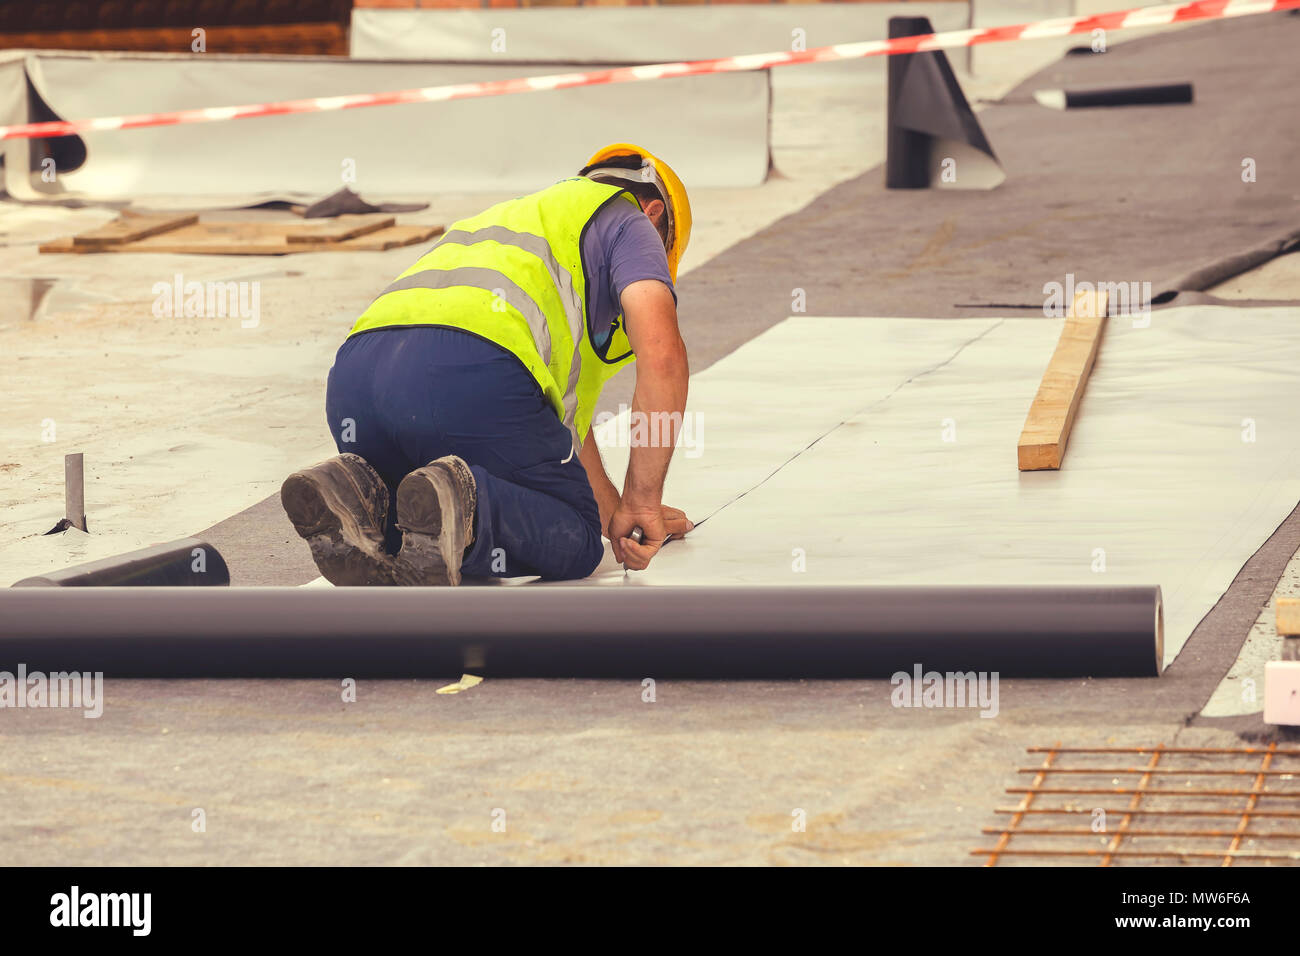 Waterproofing and insulation at construction site, waterproofing membrane preventing water penetration. Exterior vapor barrier for foundations and bas - Stock Image